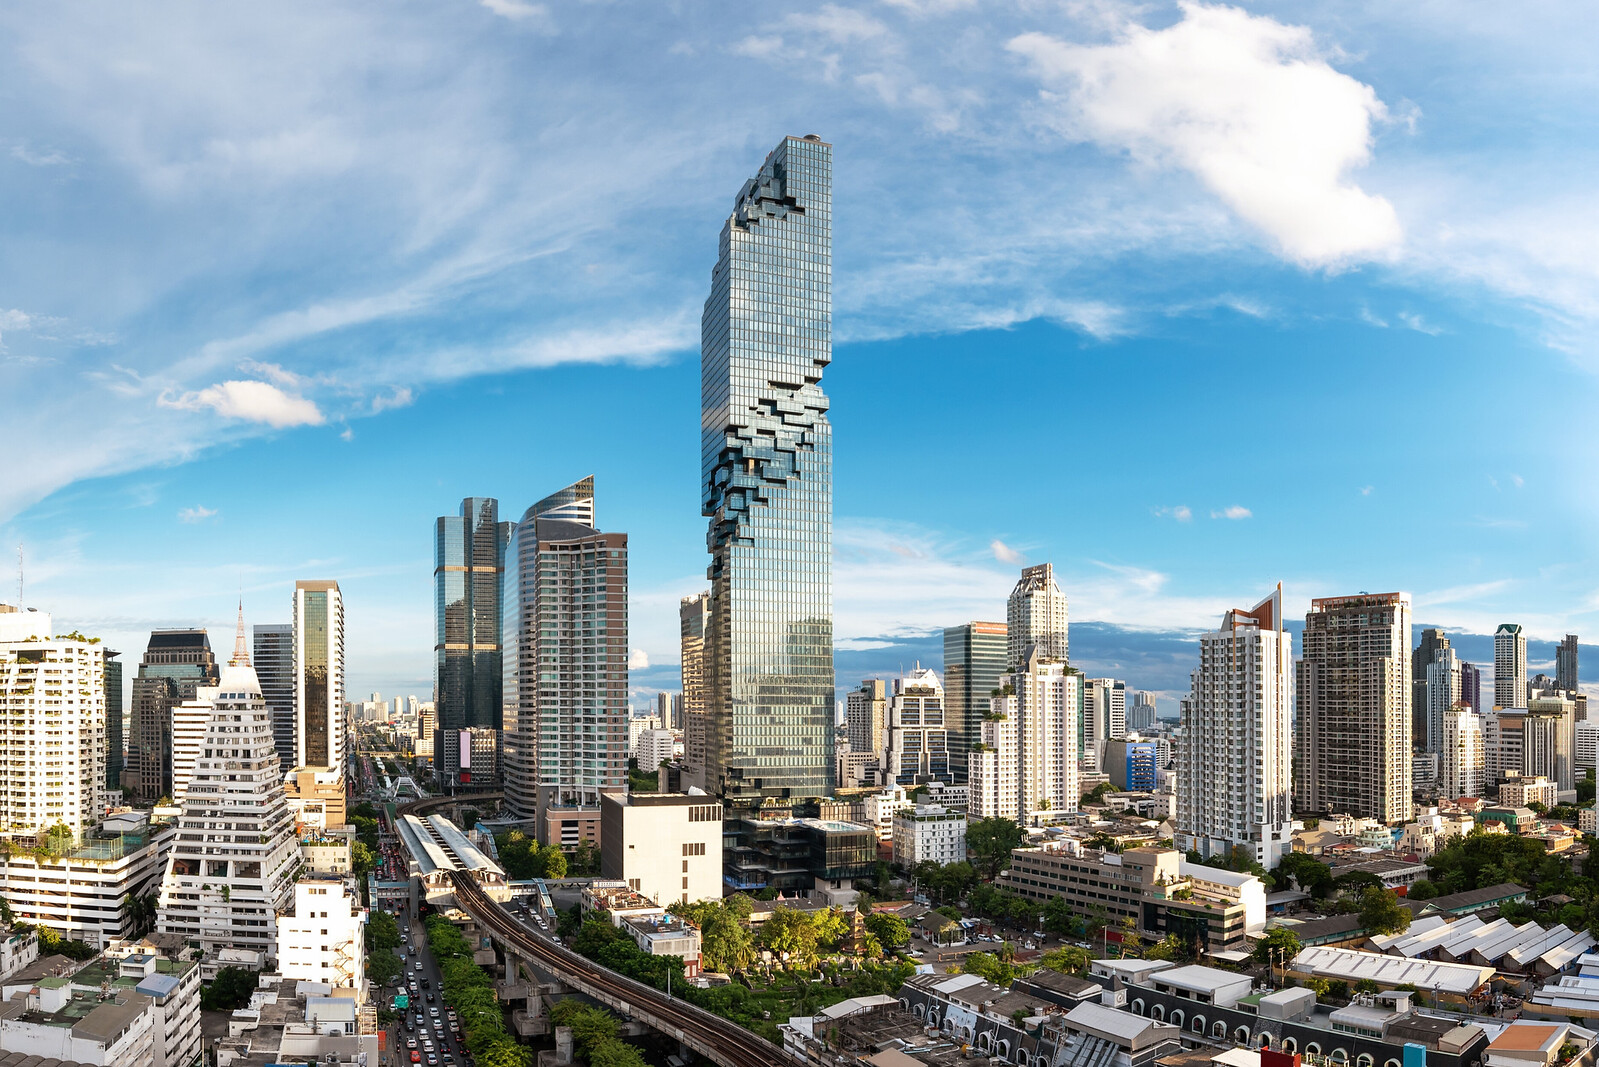 Mahanakhon Sky Walking in Bangkok